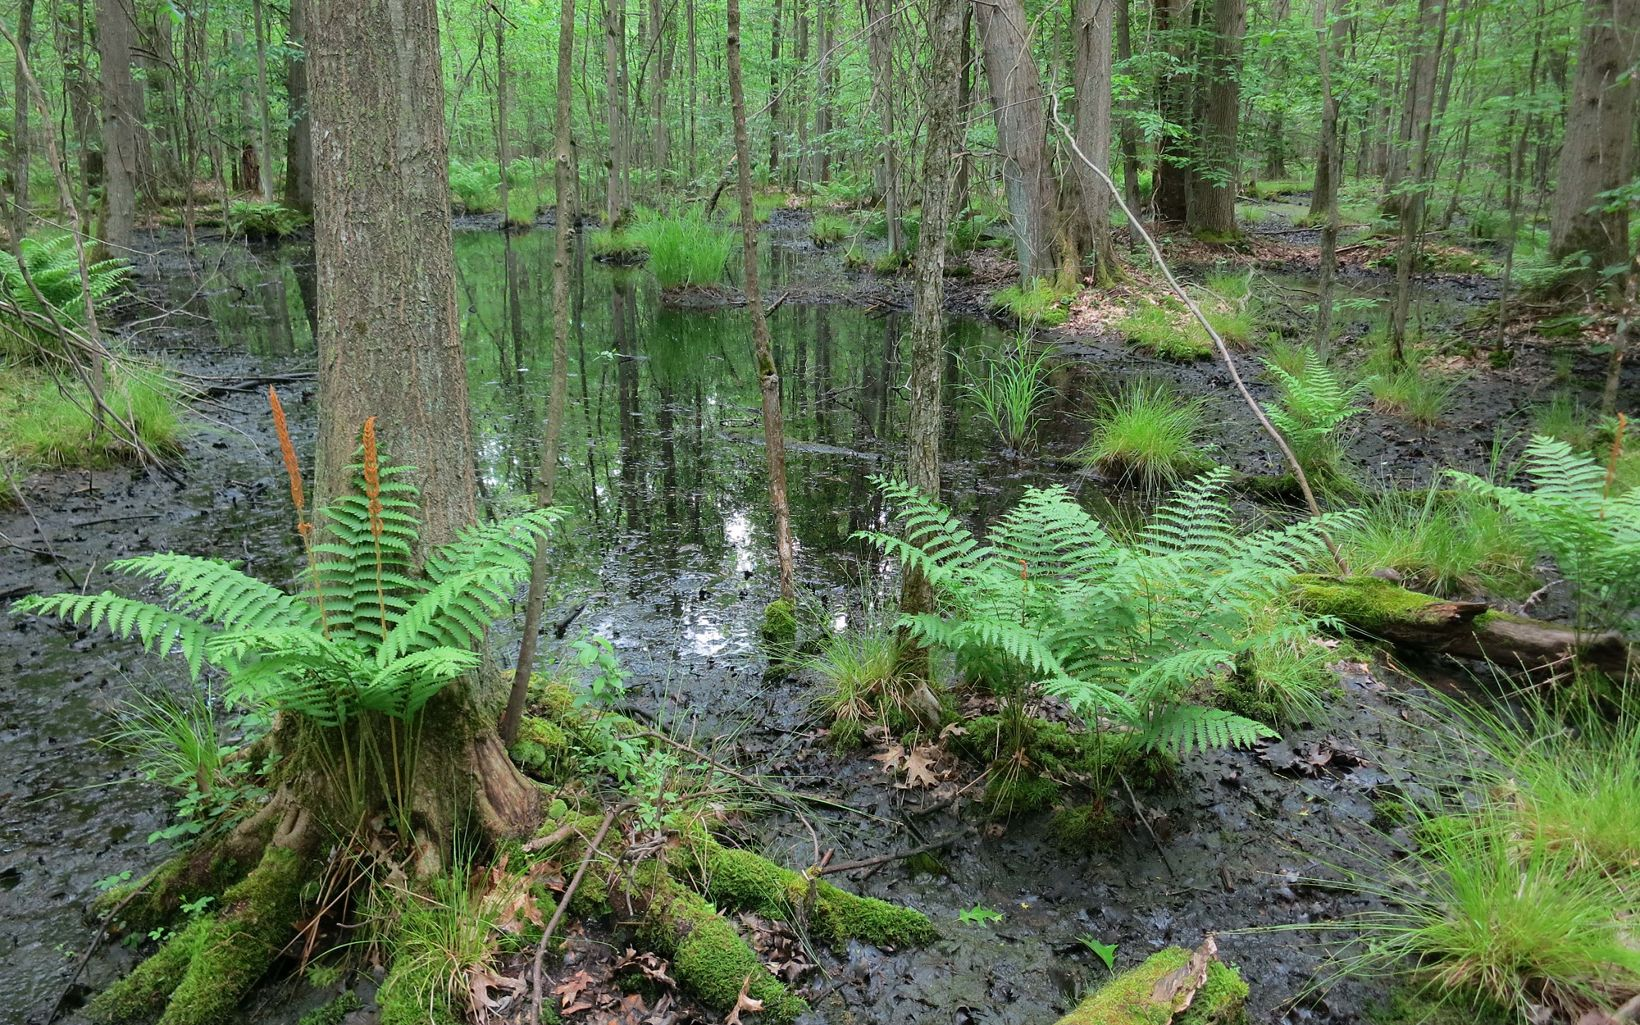 Extensive vernal pools at the preserve are the breeding sites for many amphibians like spotted salamanders and wood frogs.